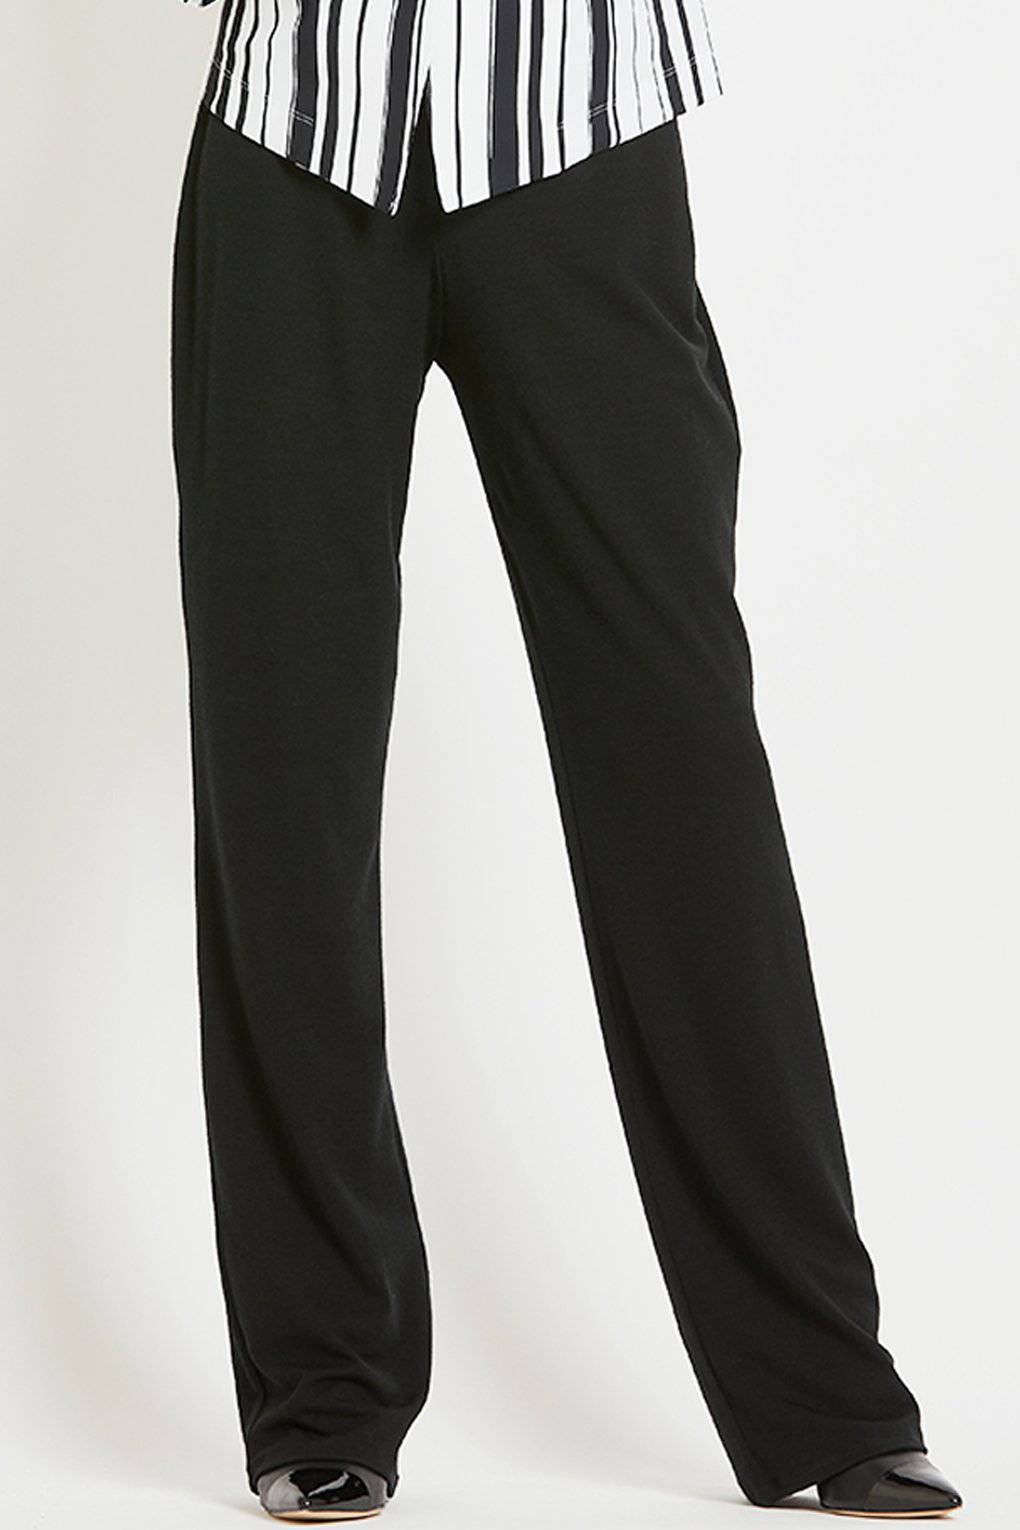 PAULA RYAN Tailored Pant - Microjersey - Pant - Paula Ryan Fashion Collection - Paula Ryan